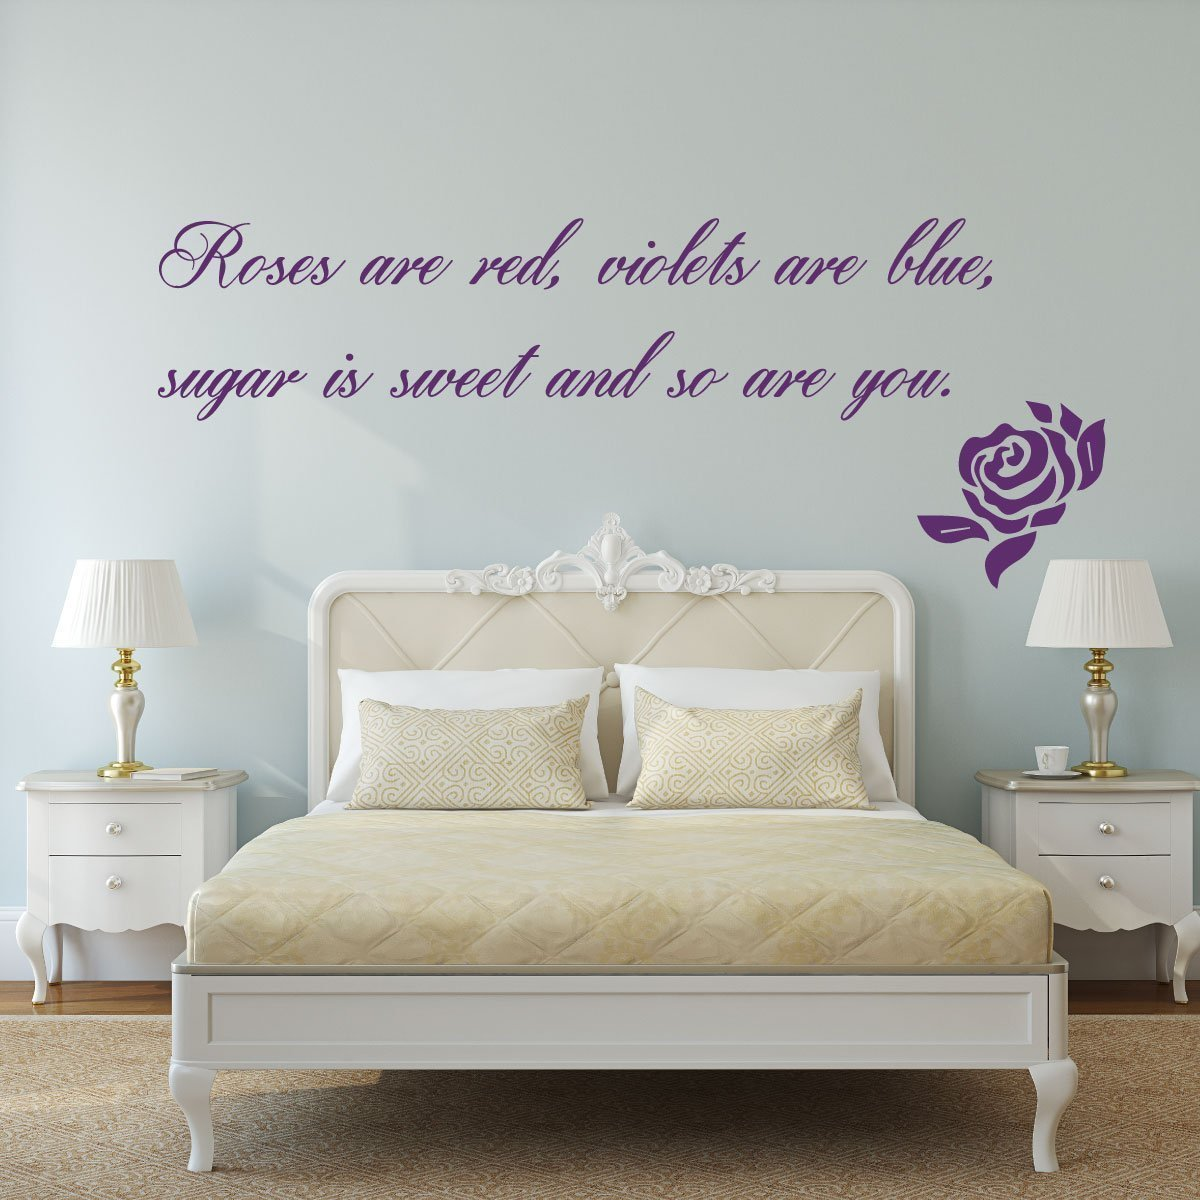 romantic quotes roses are red violets are blue vinyl wall art decal for master bedroom. Black Bedroom Furniture Sets. Home Design Ideas